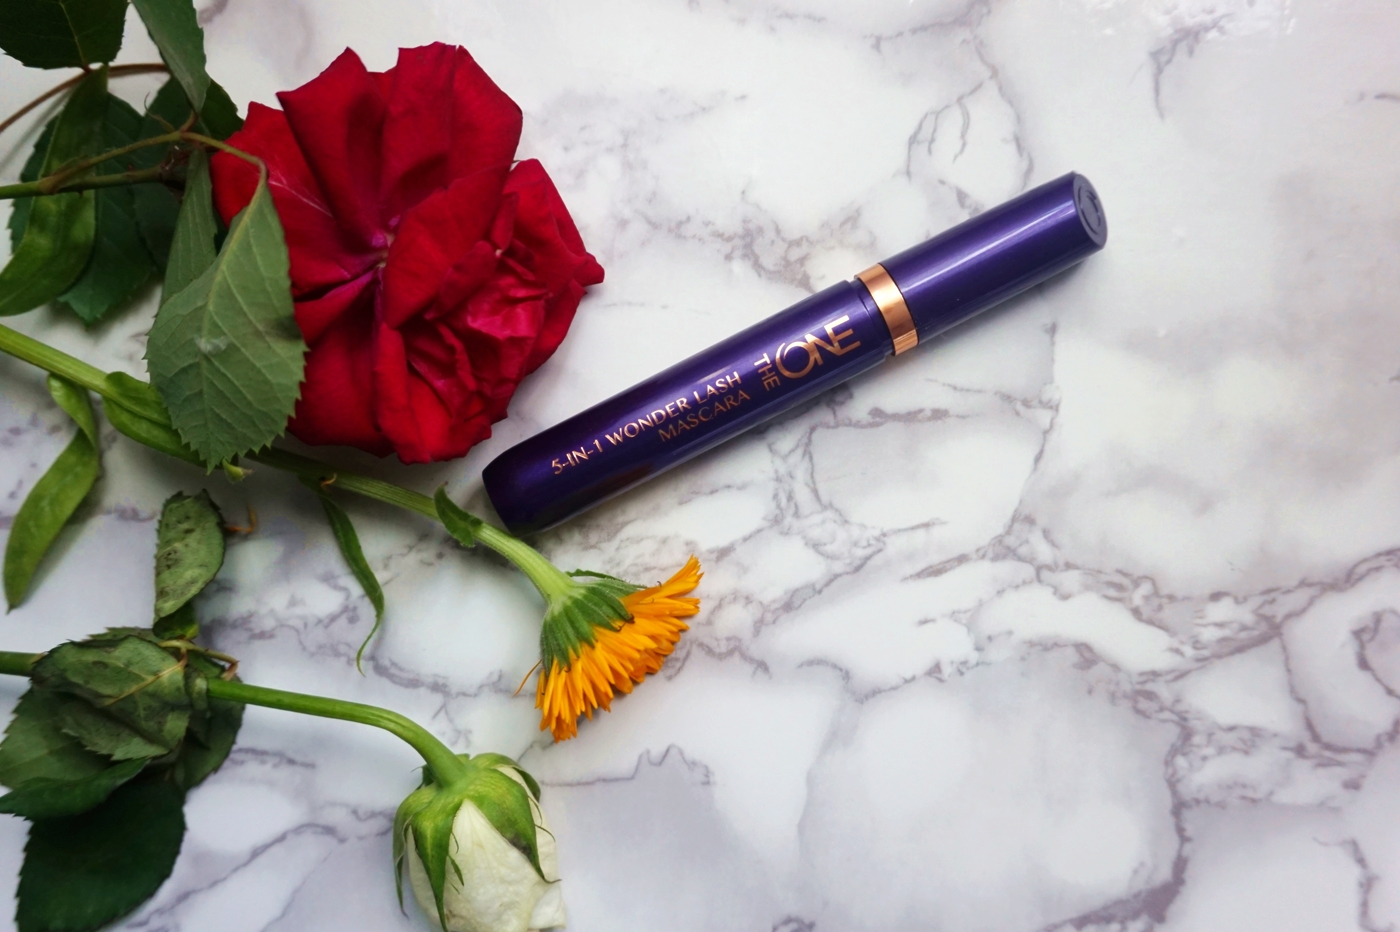 Mascara Wonder Lash 5in1 oriflame